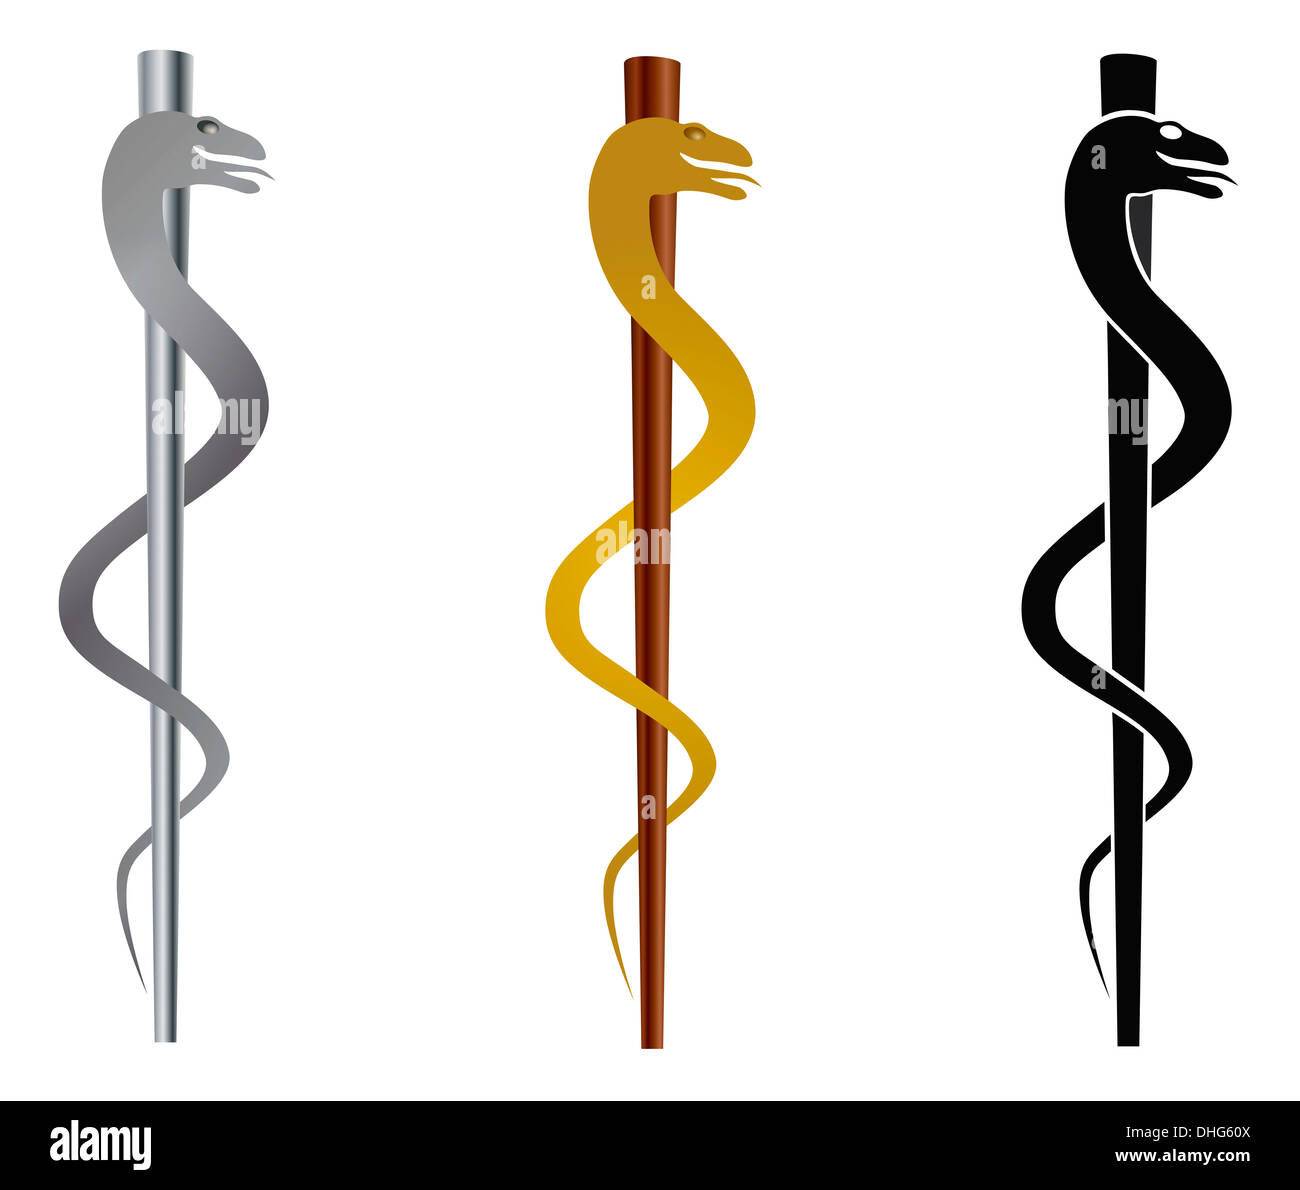 Rod Of Asclepius Medical Symbol Isolated On White Background Stock